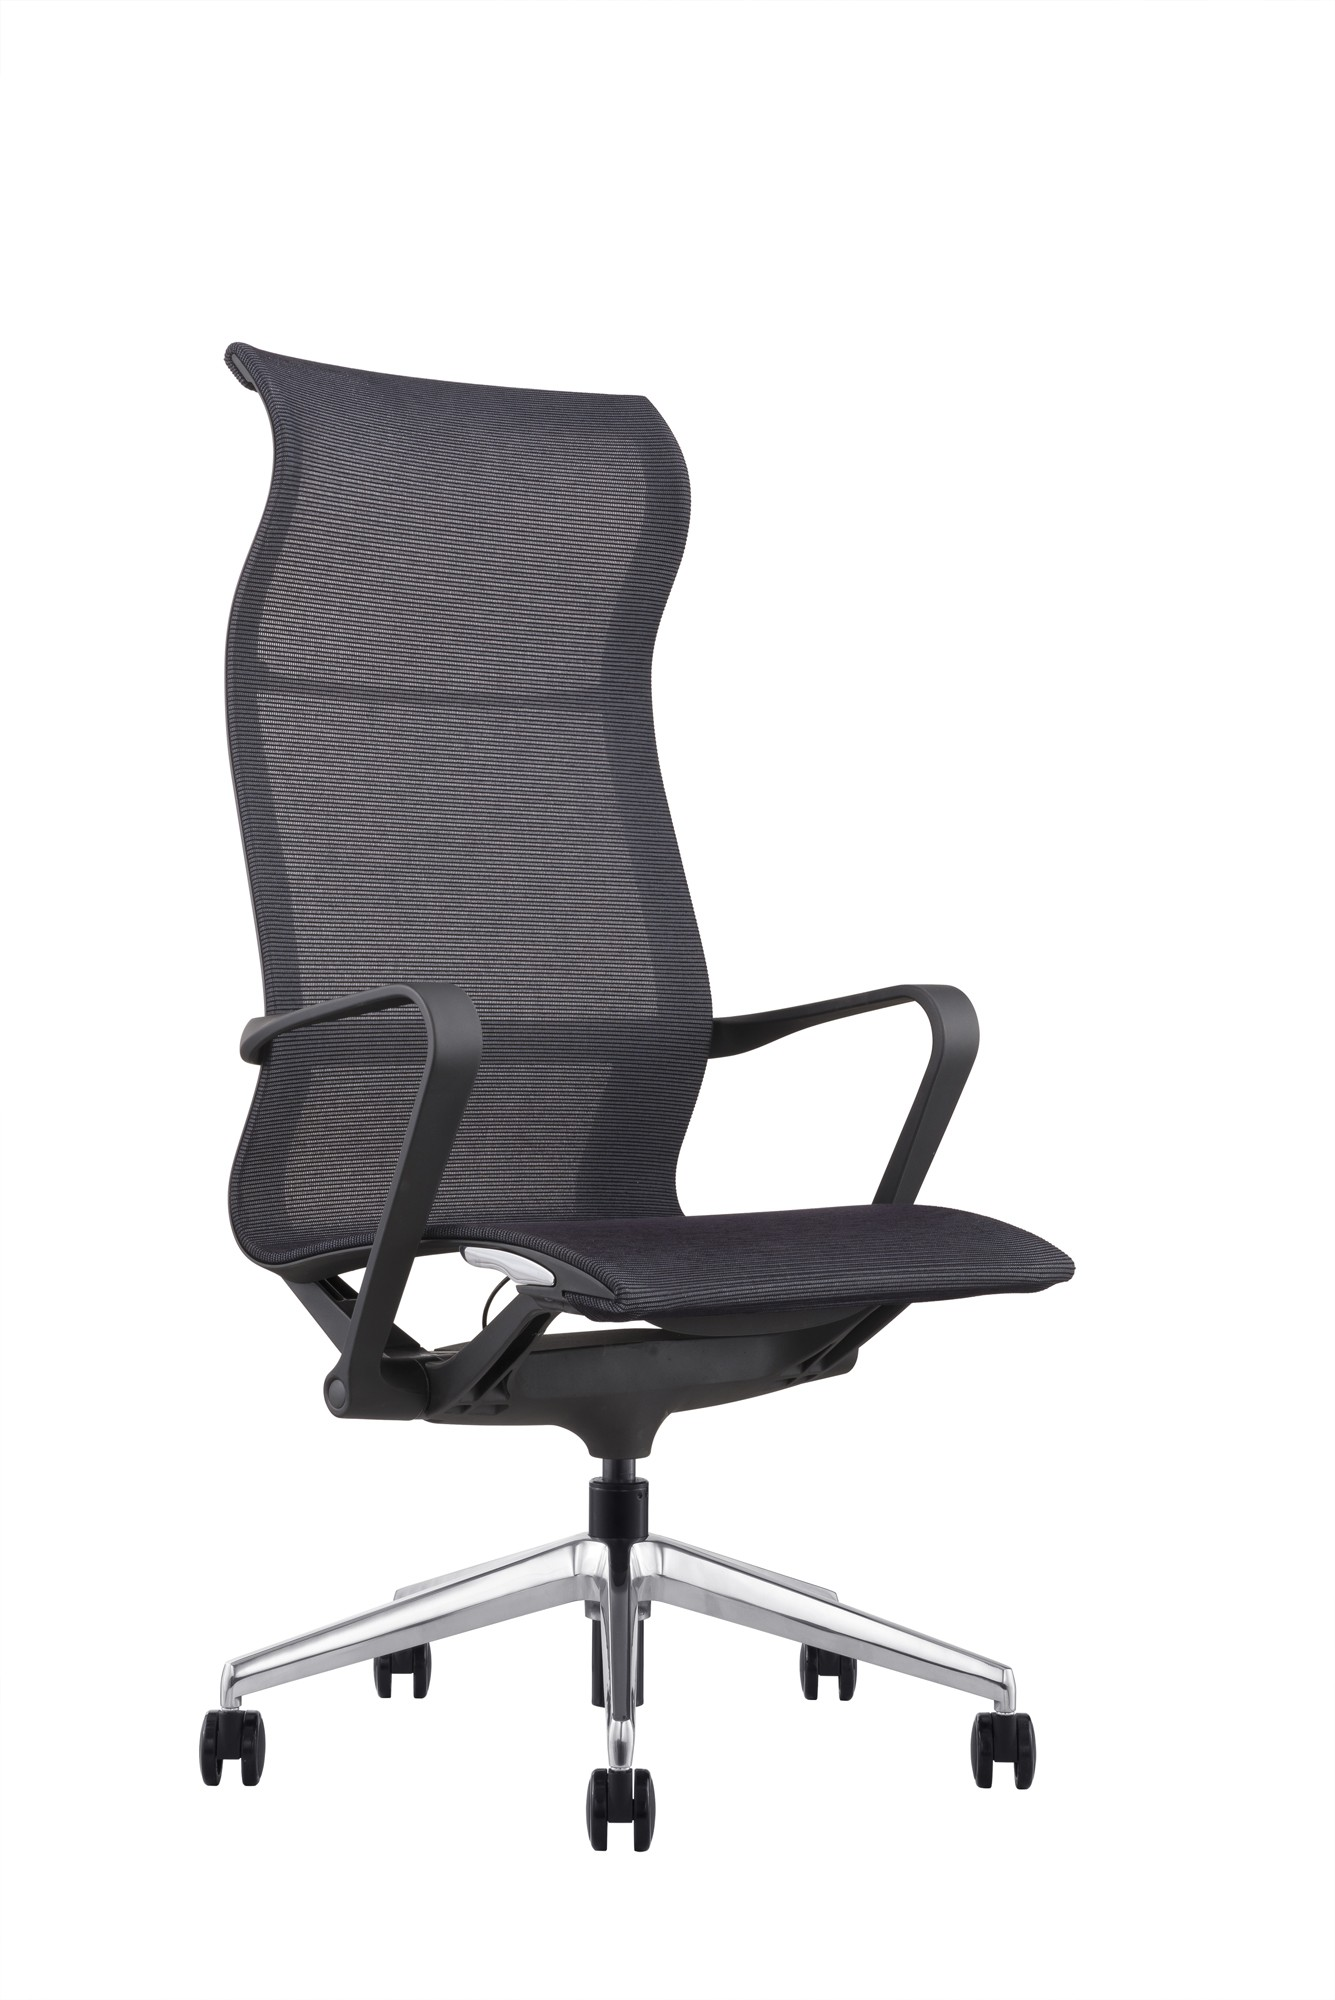 office chair high back design and table hilo series ergonomic mesh hydraulic with your purchase receive at no cost